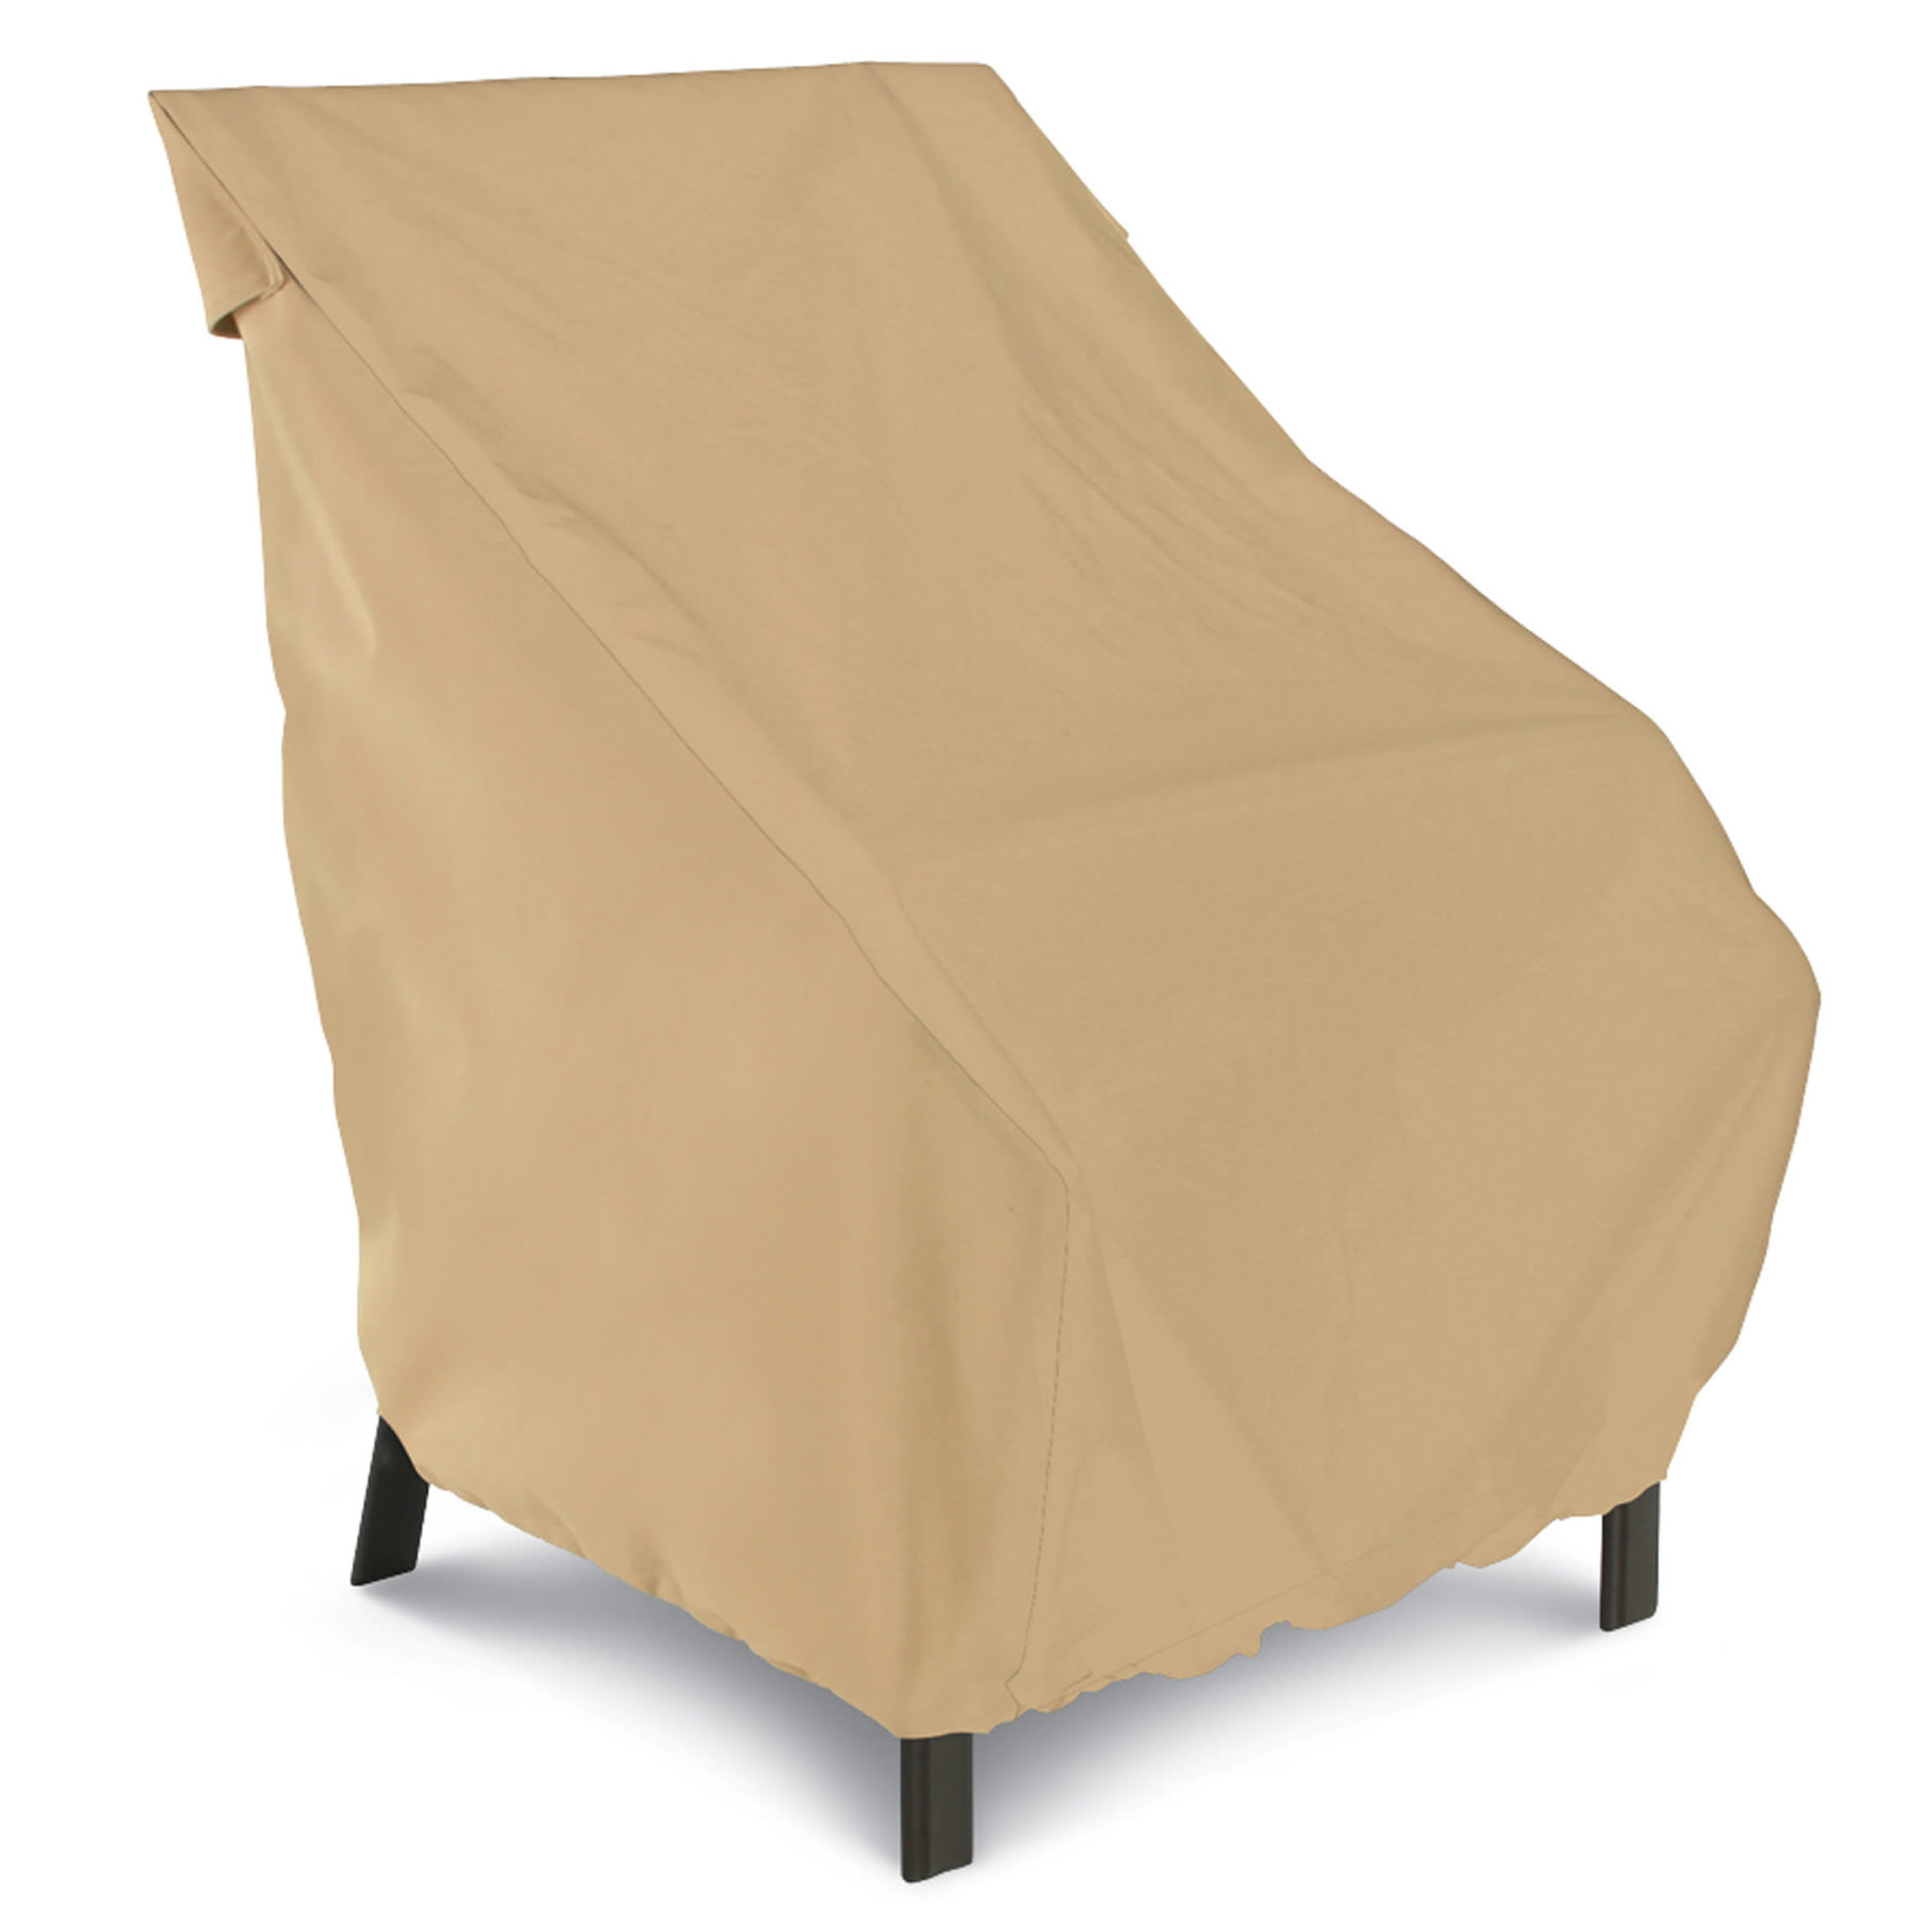 Classic Accessories Terrazzo Standard Sand Patio Chair Cover